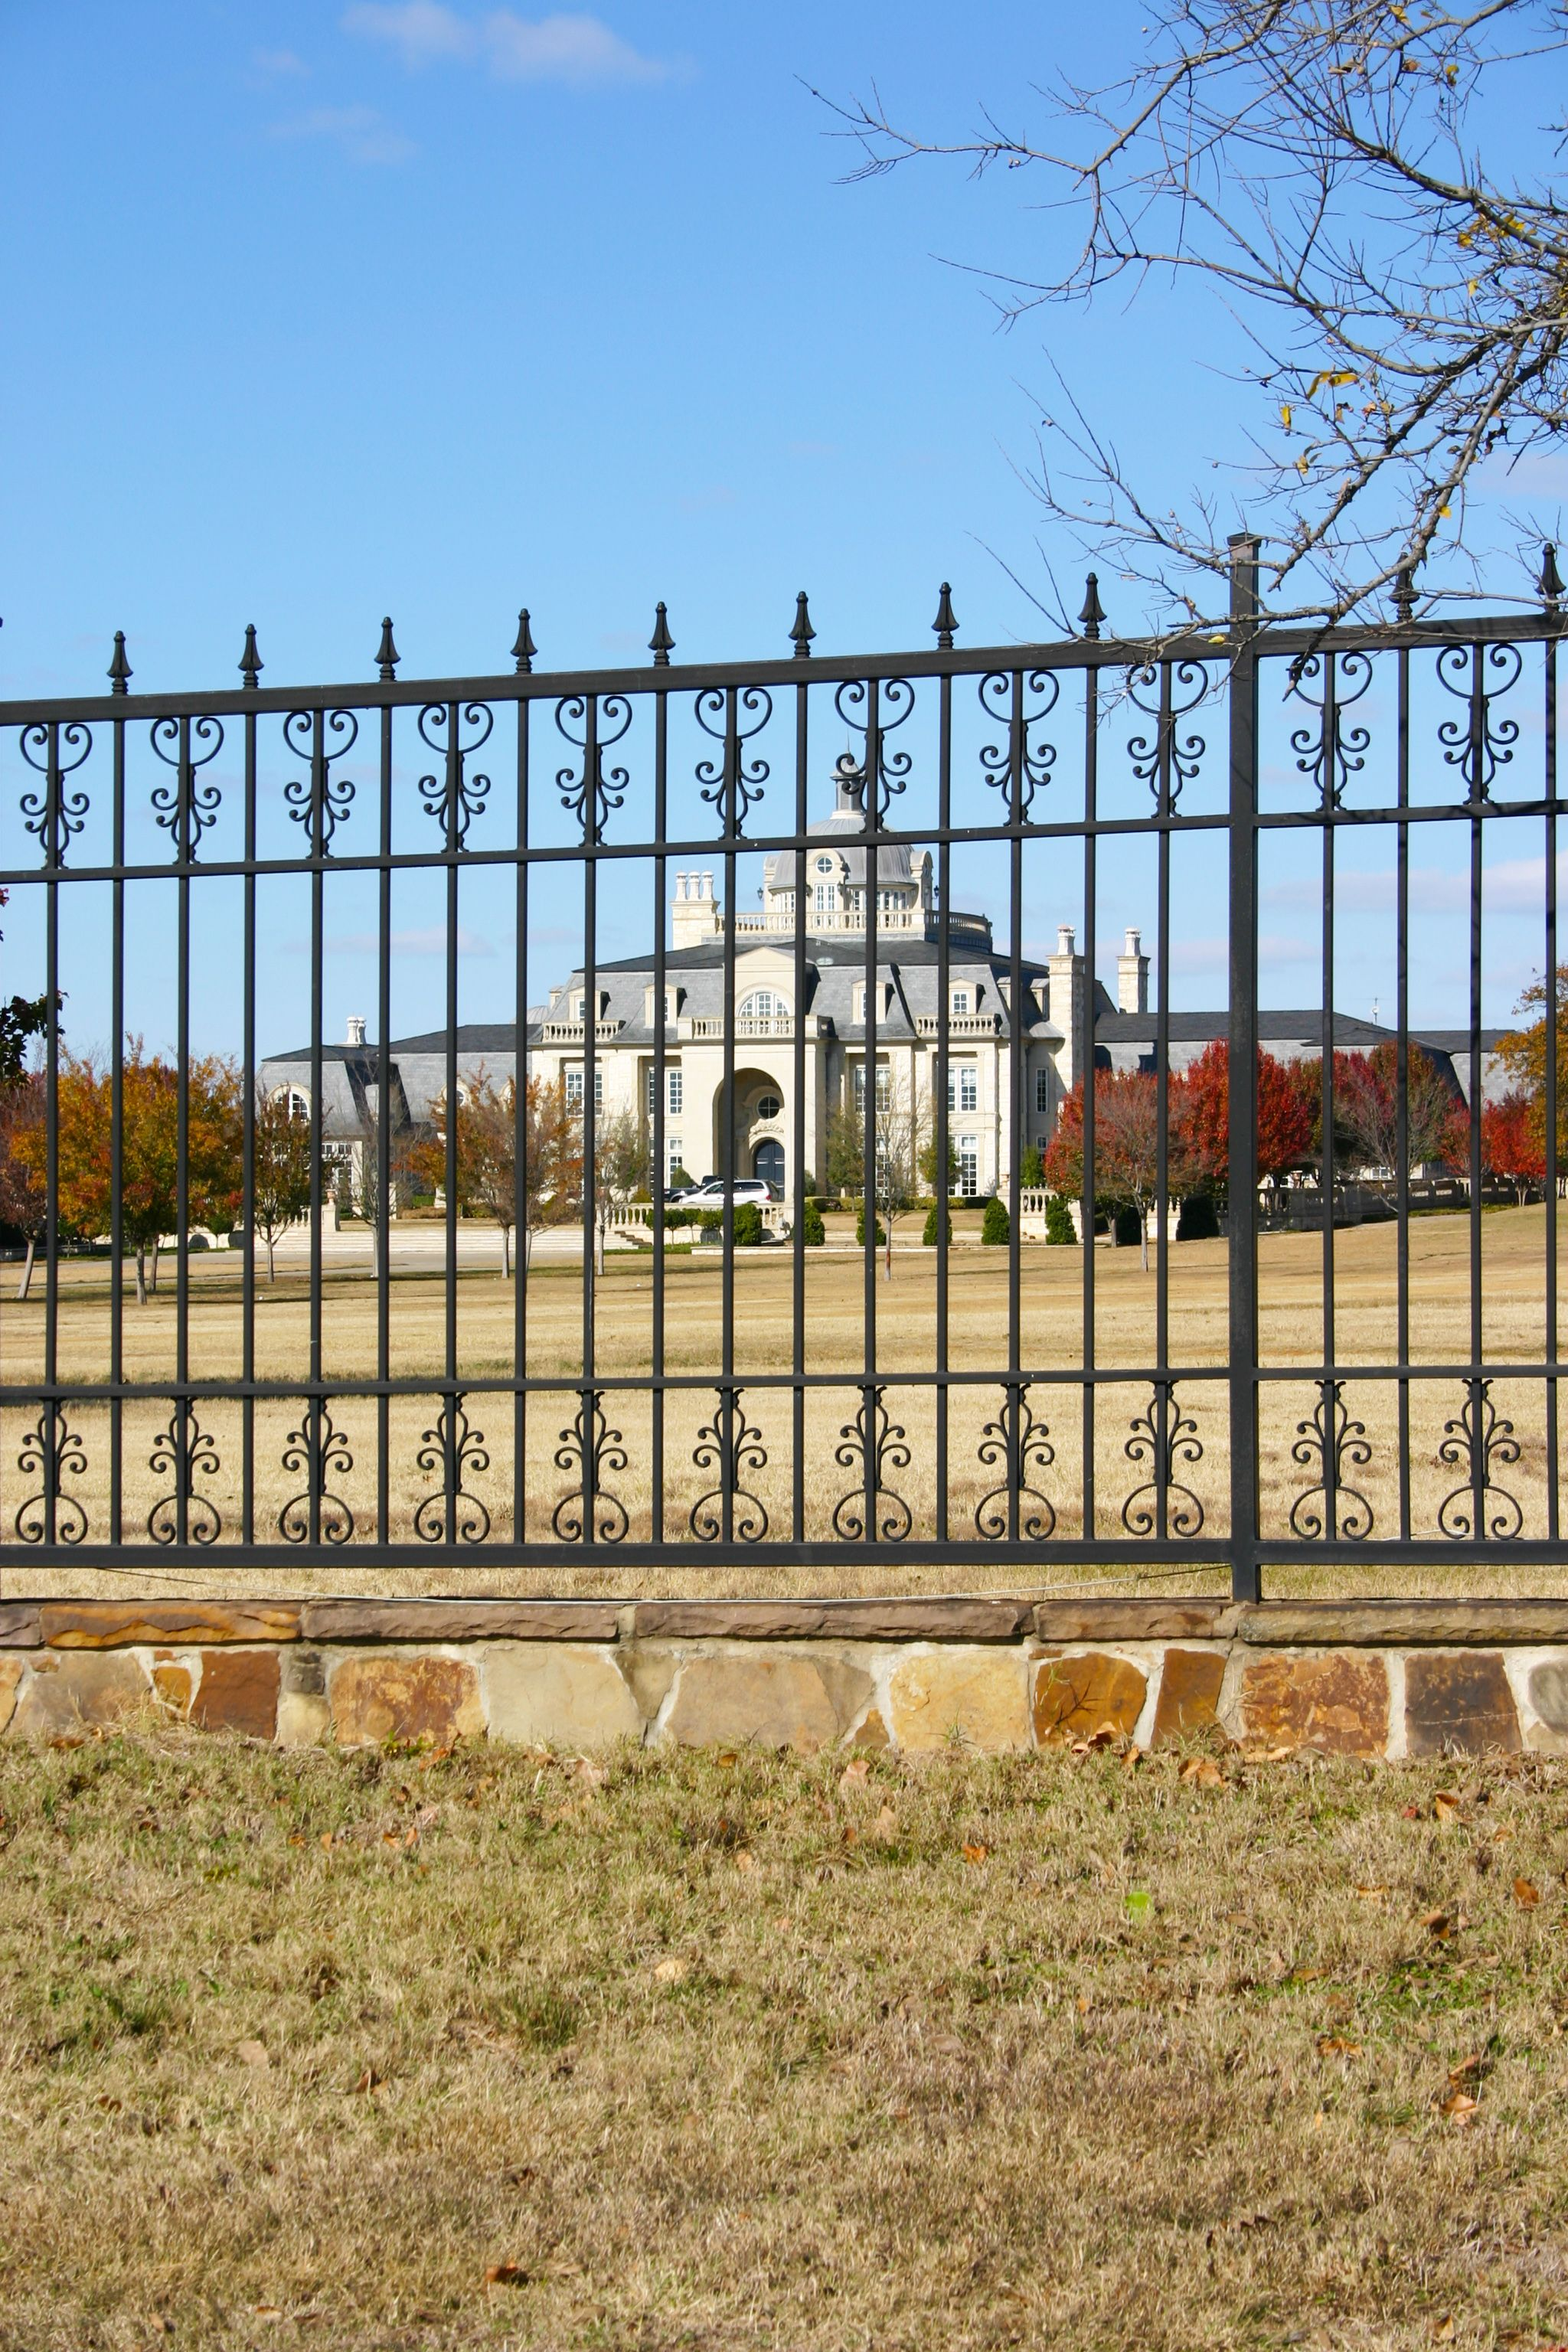 This Beautiful Ranch Fence Is Adorned With Single Faced Cast Iron